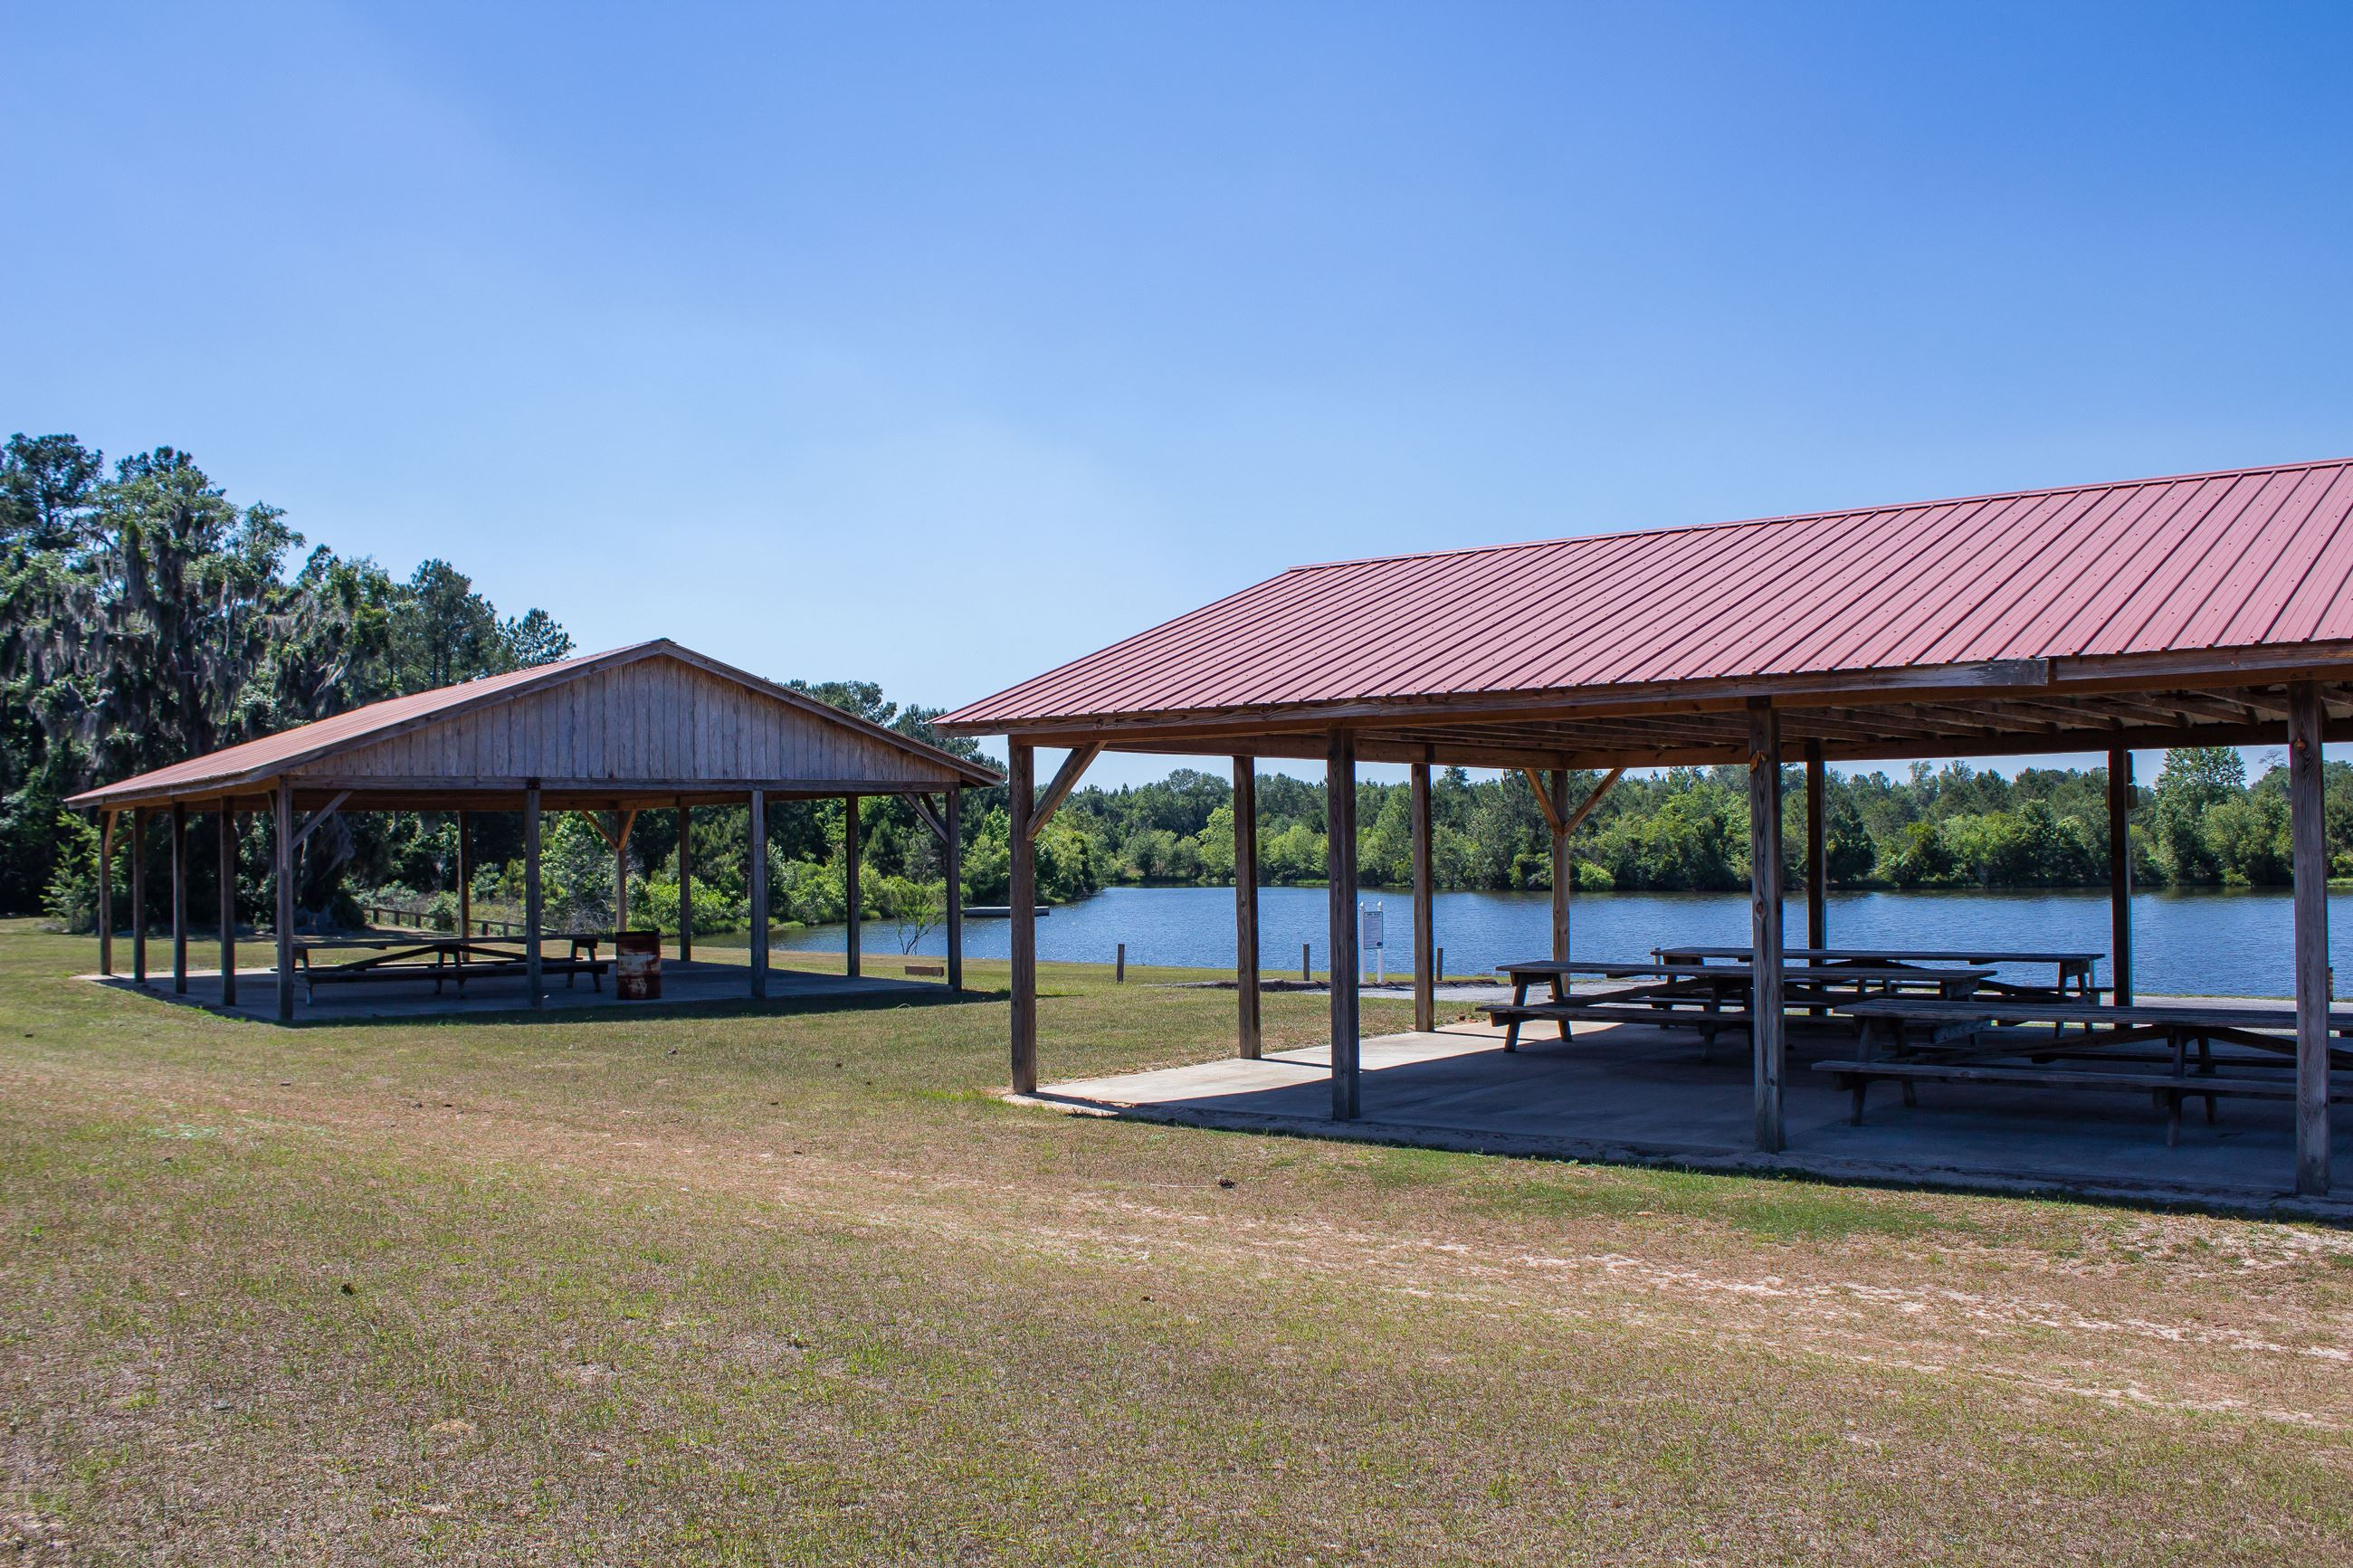 An image of two picnic shelters at a park with a lake in the background.